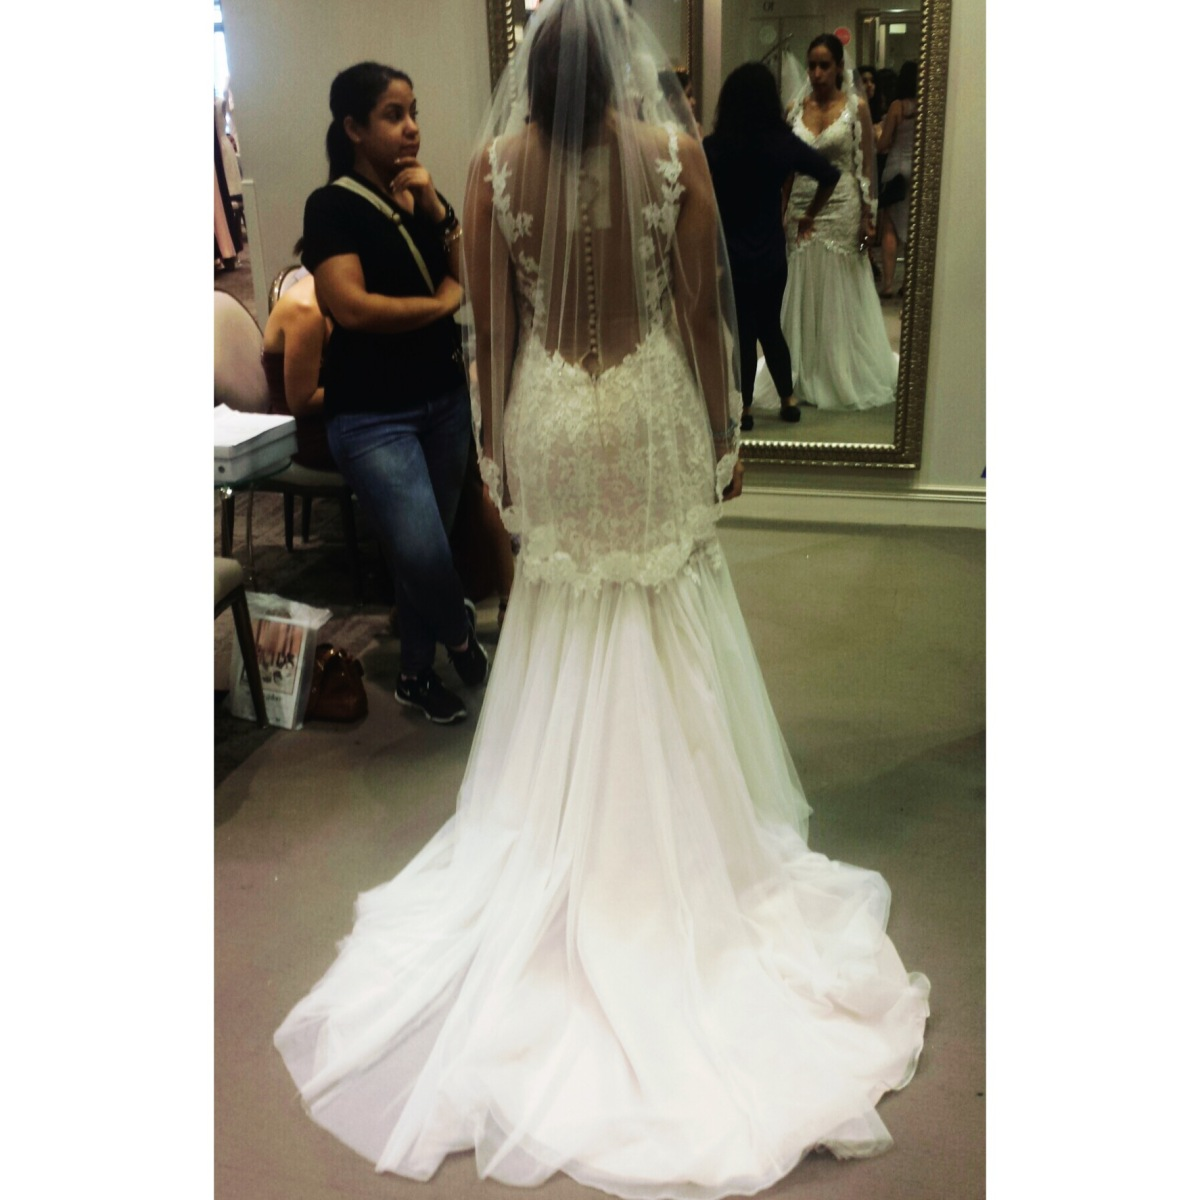 Stepping into your dreamdress